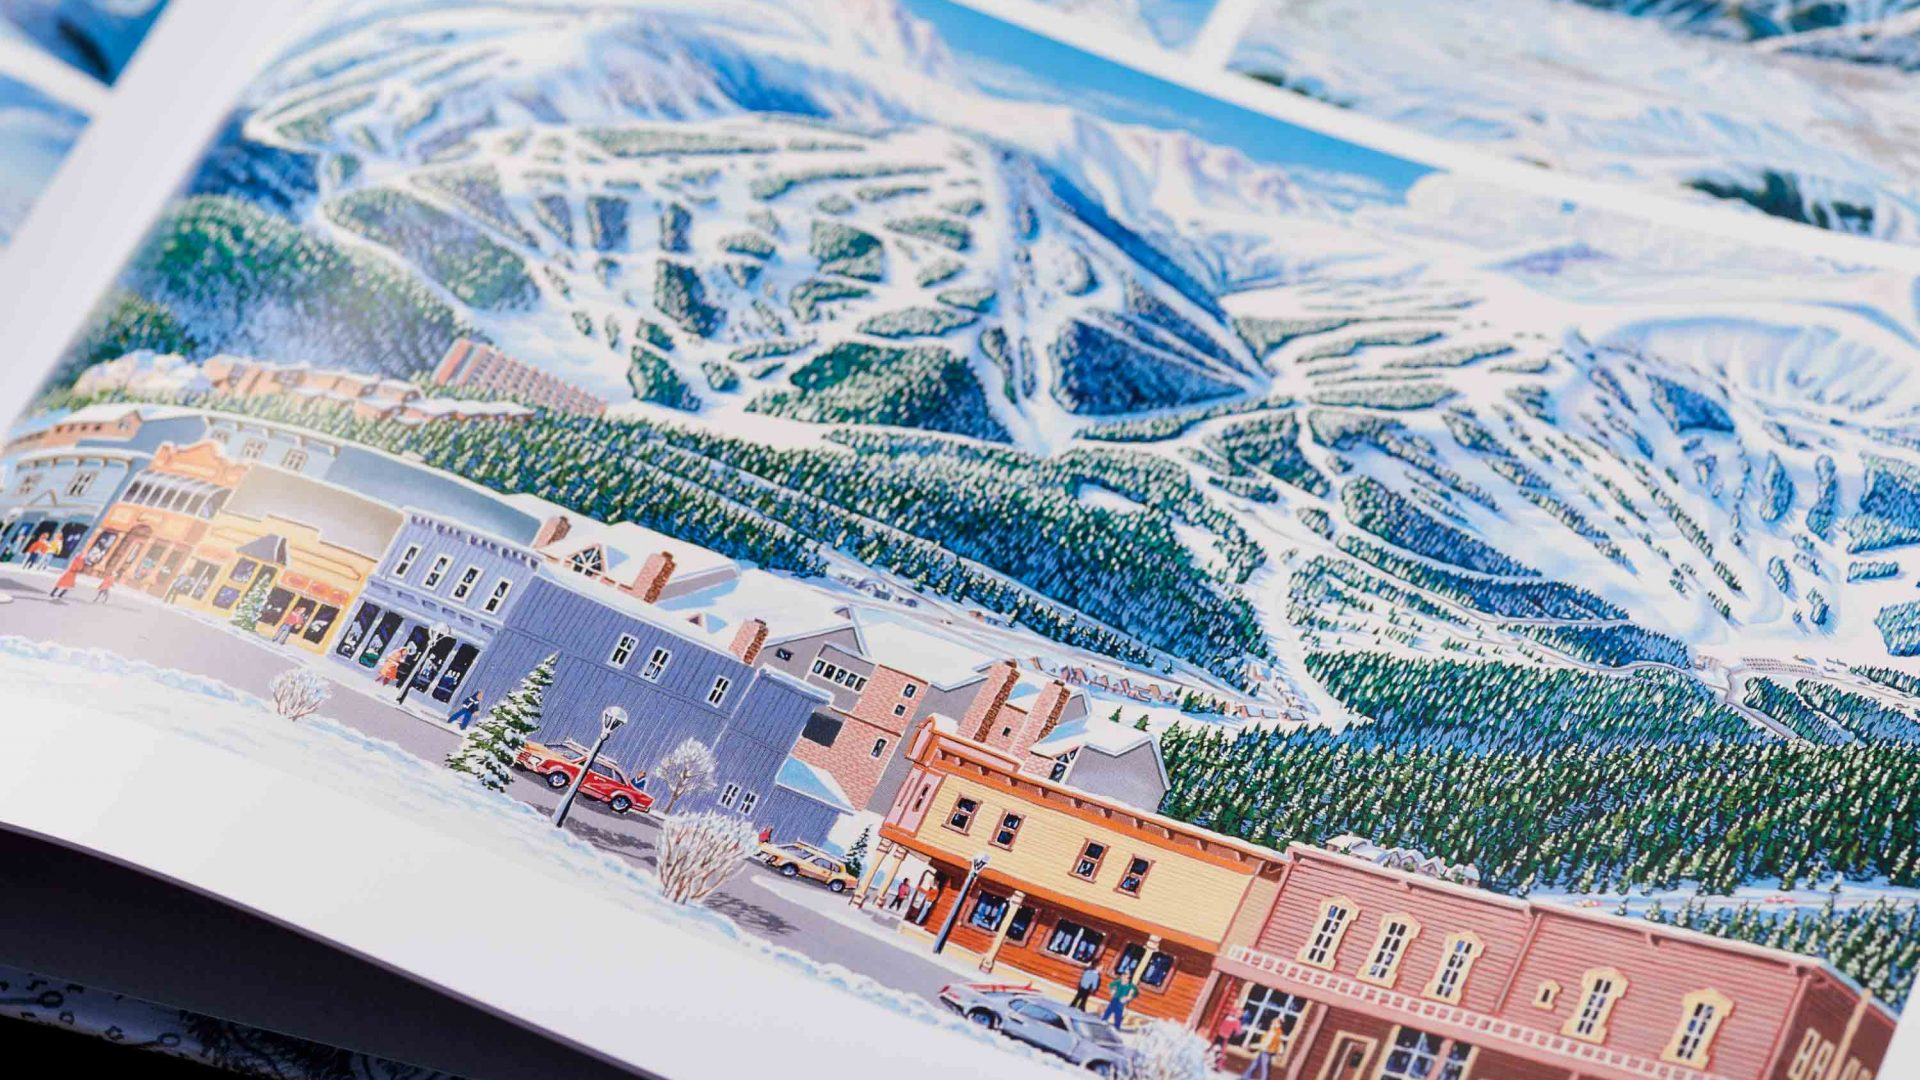 Detail of one of James's maps shows the buildings and mountains at a ski resort.